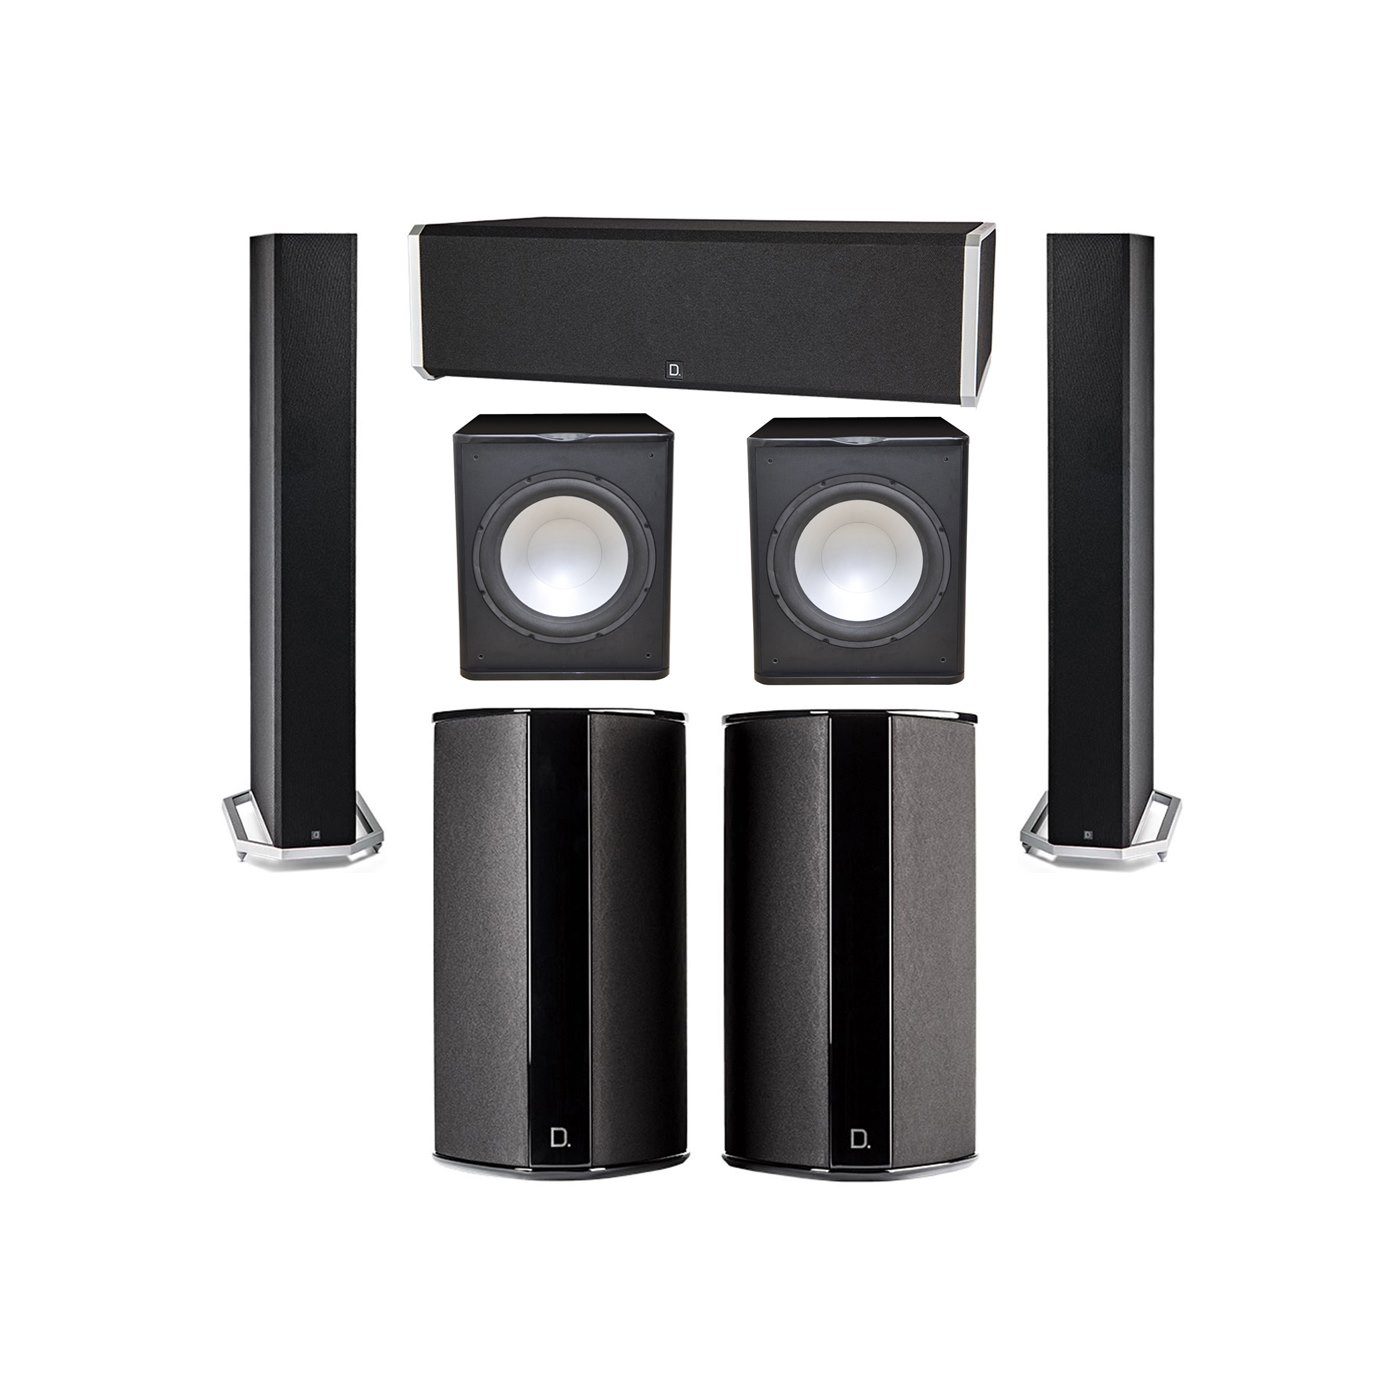 Definitive Technology 5.2 System with 2 BP9060 Tower Speakers, 1 CS9040 Center Channel Speaker, 2 SR9080 Surround Speaker, 2 Premier Acoustic PA-150 Subwoofer